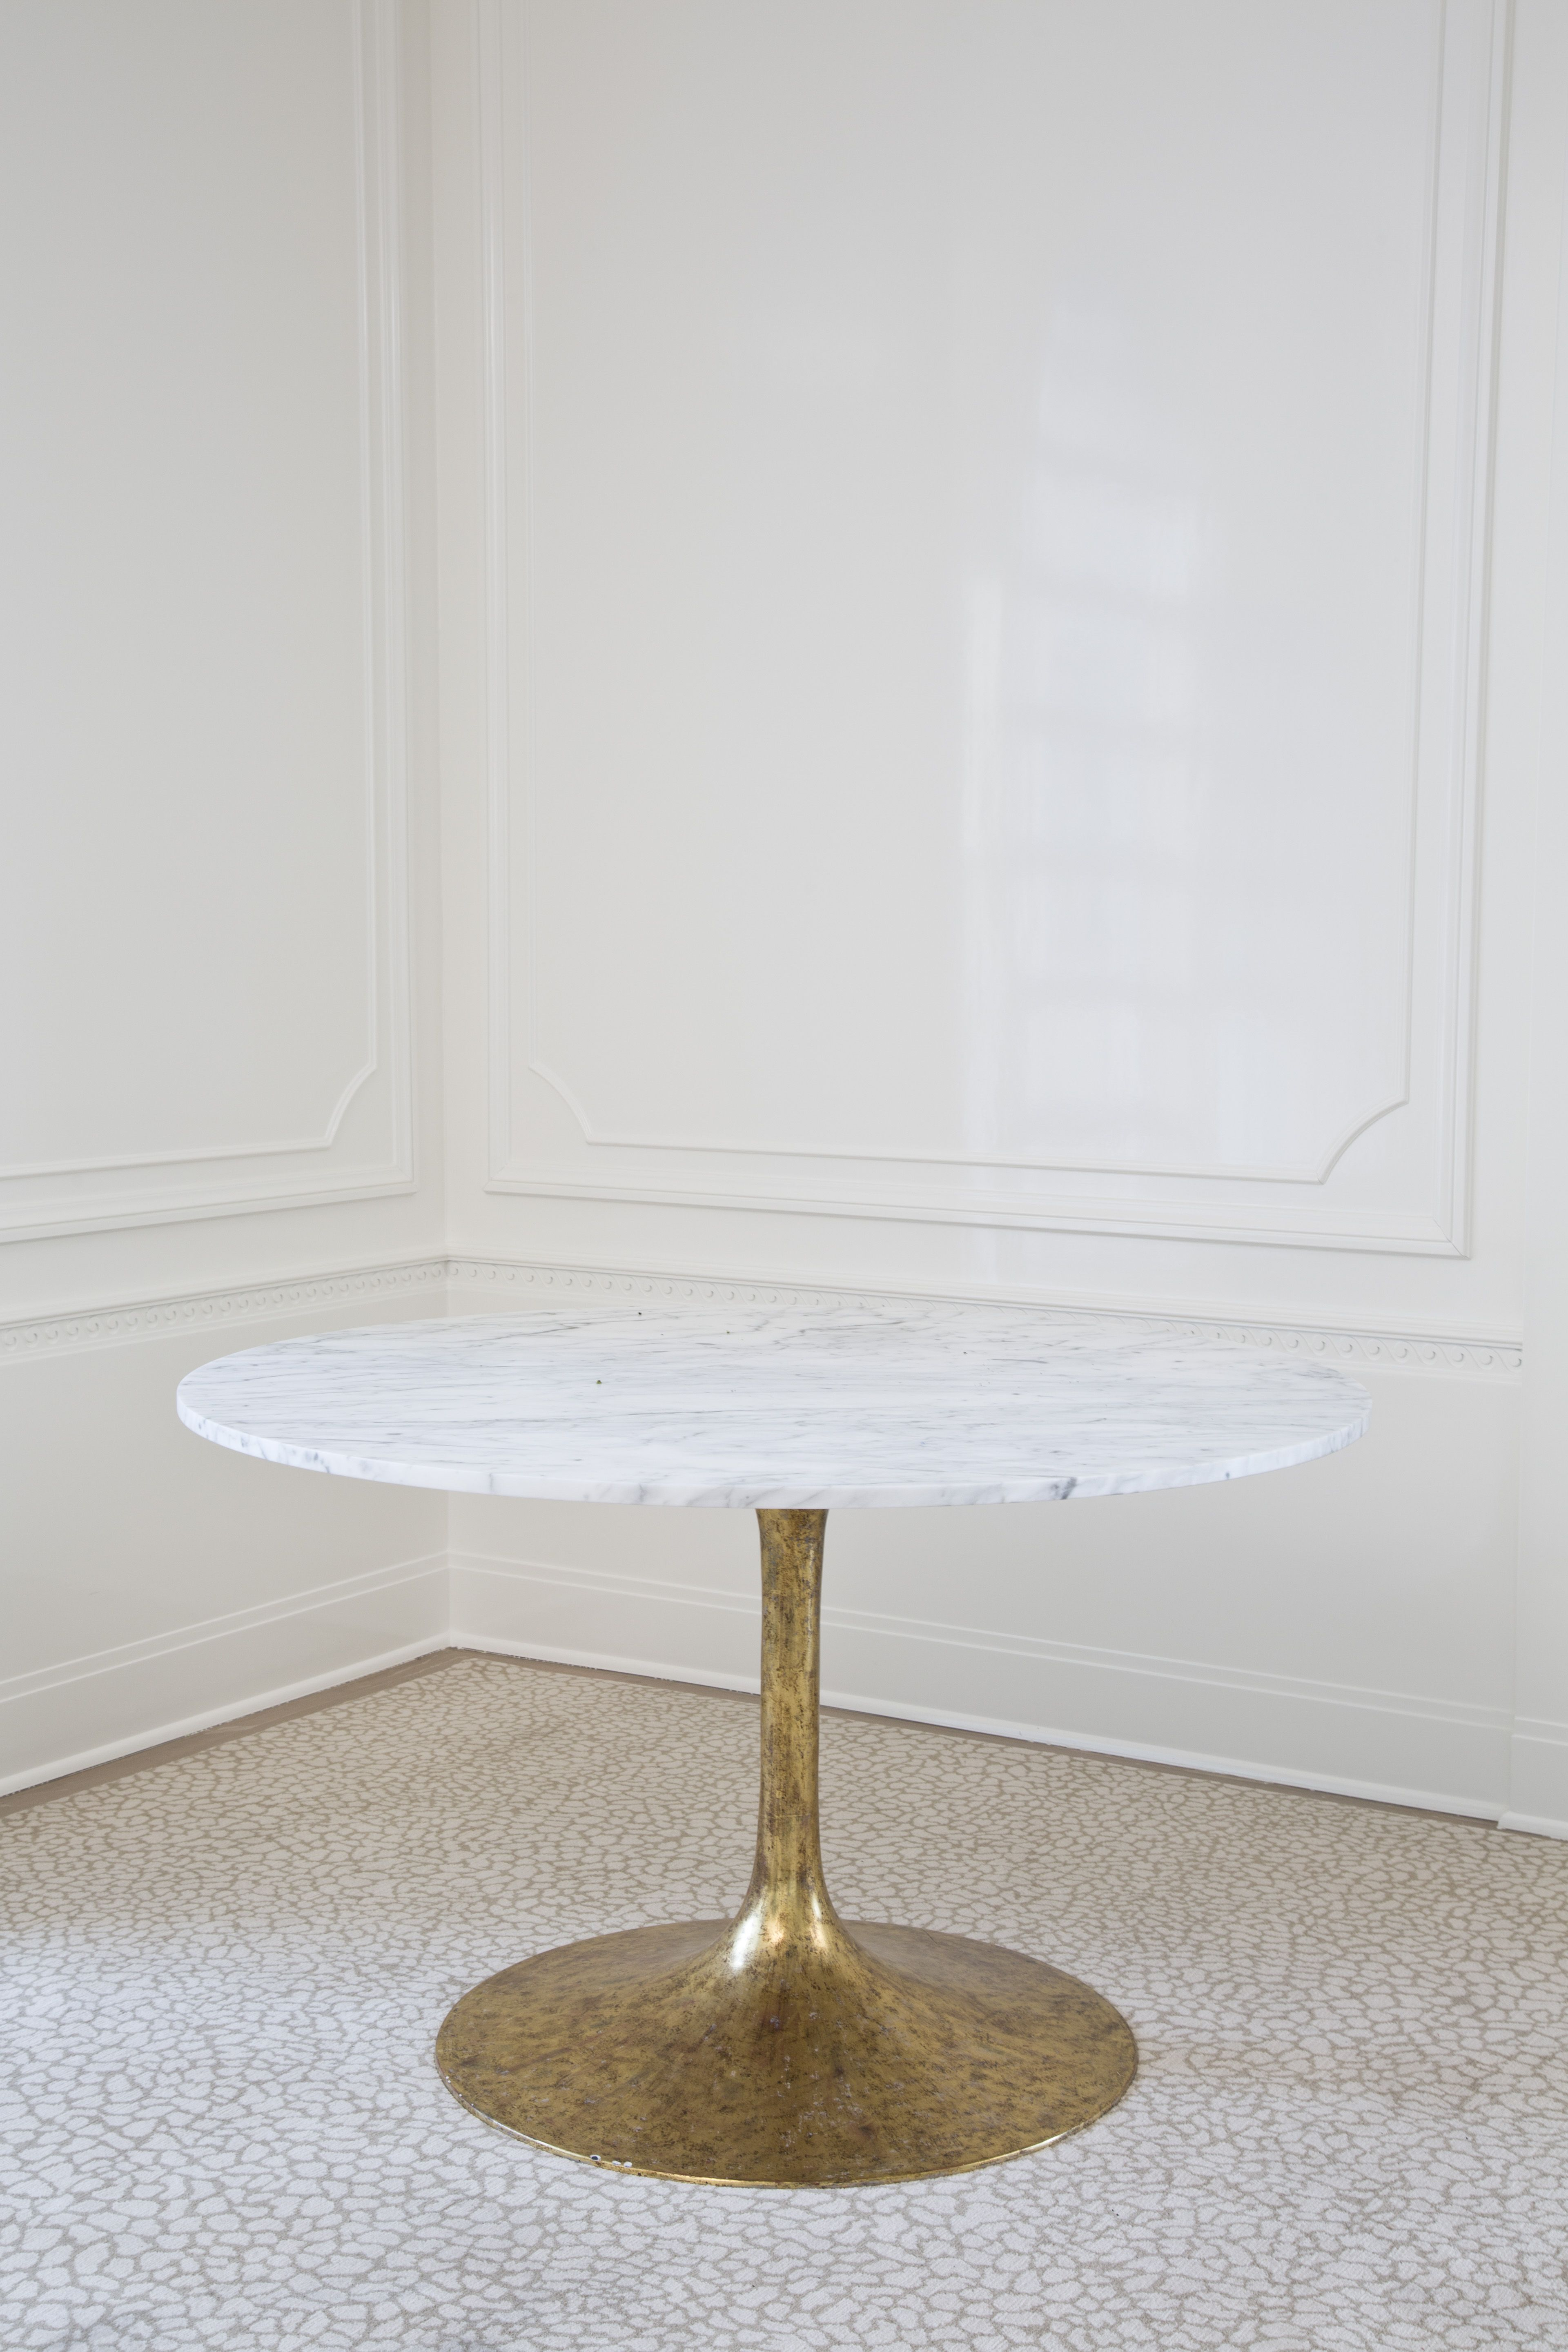 KELLY WEARSTLER IRIS DINING TABLE This simple tulip style